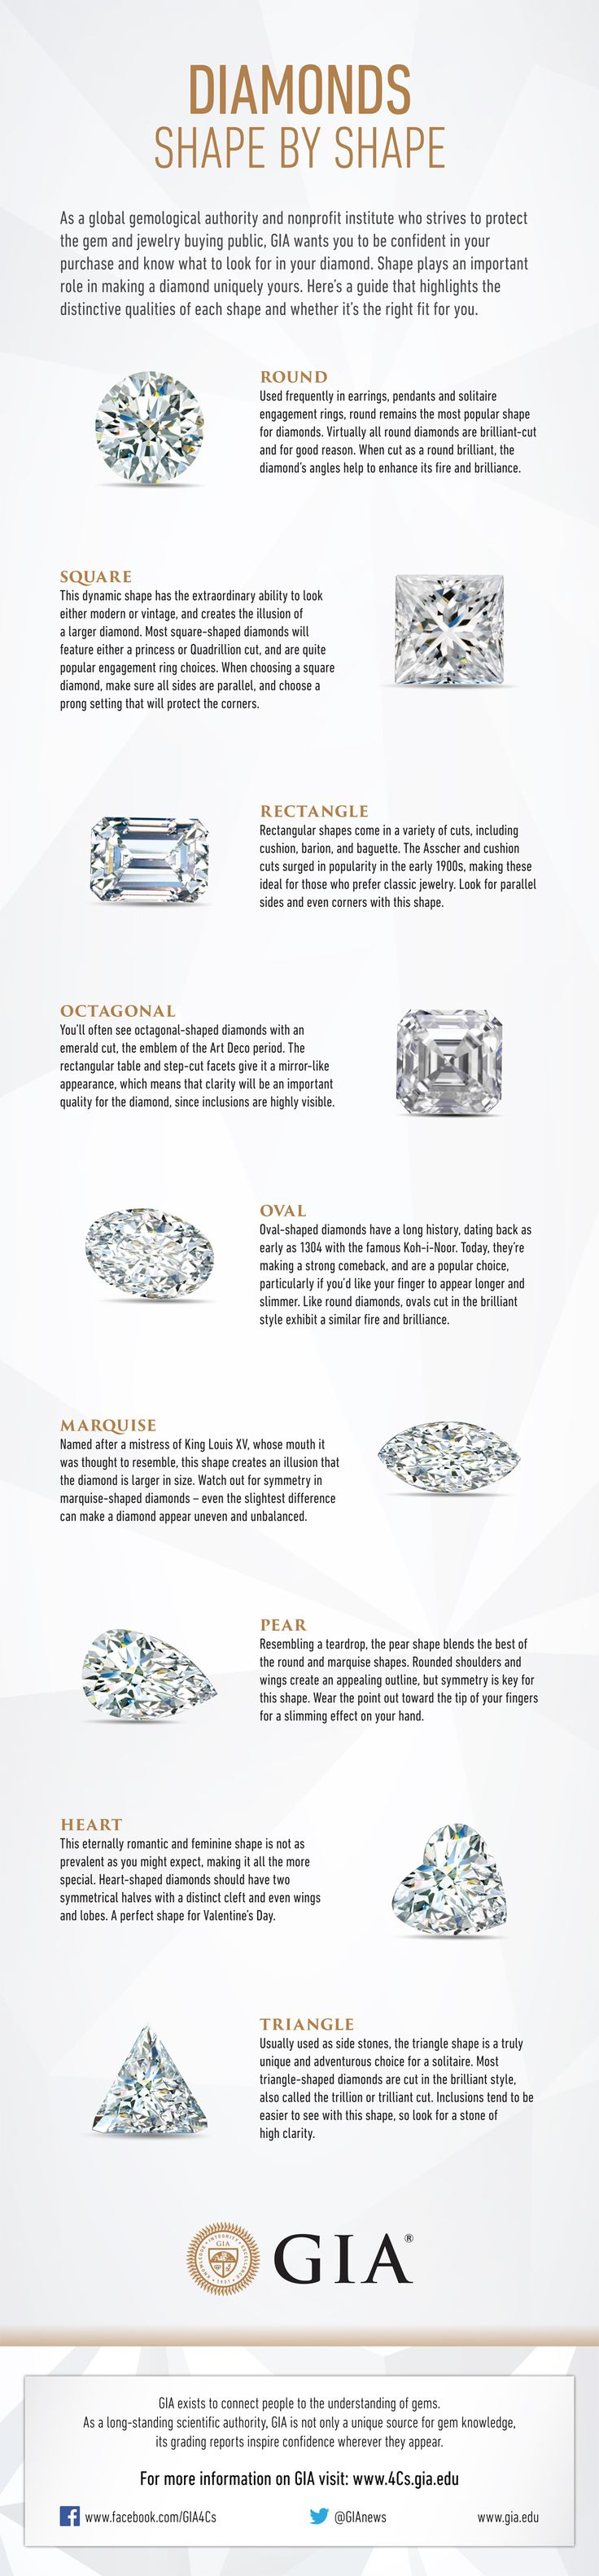 why sizes me near diamonds a brilliant dearborn history jewellery round with d start different of jewelers grading diamond